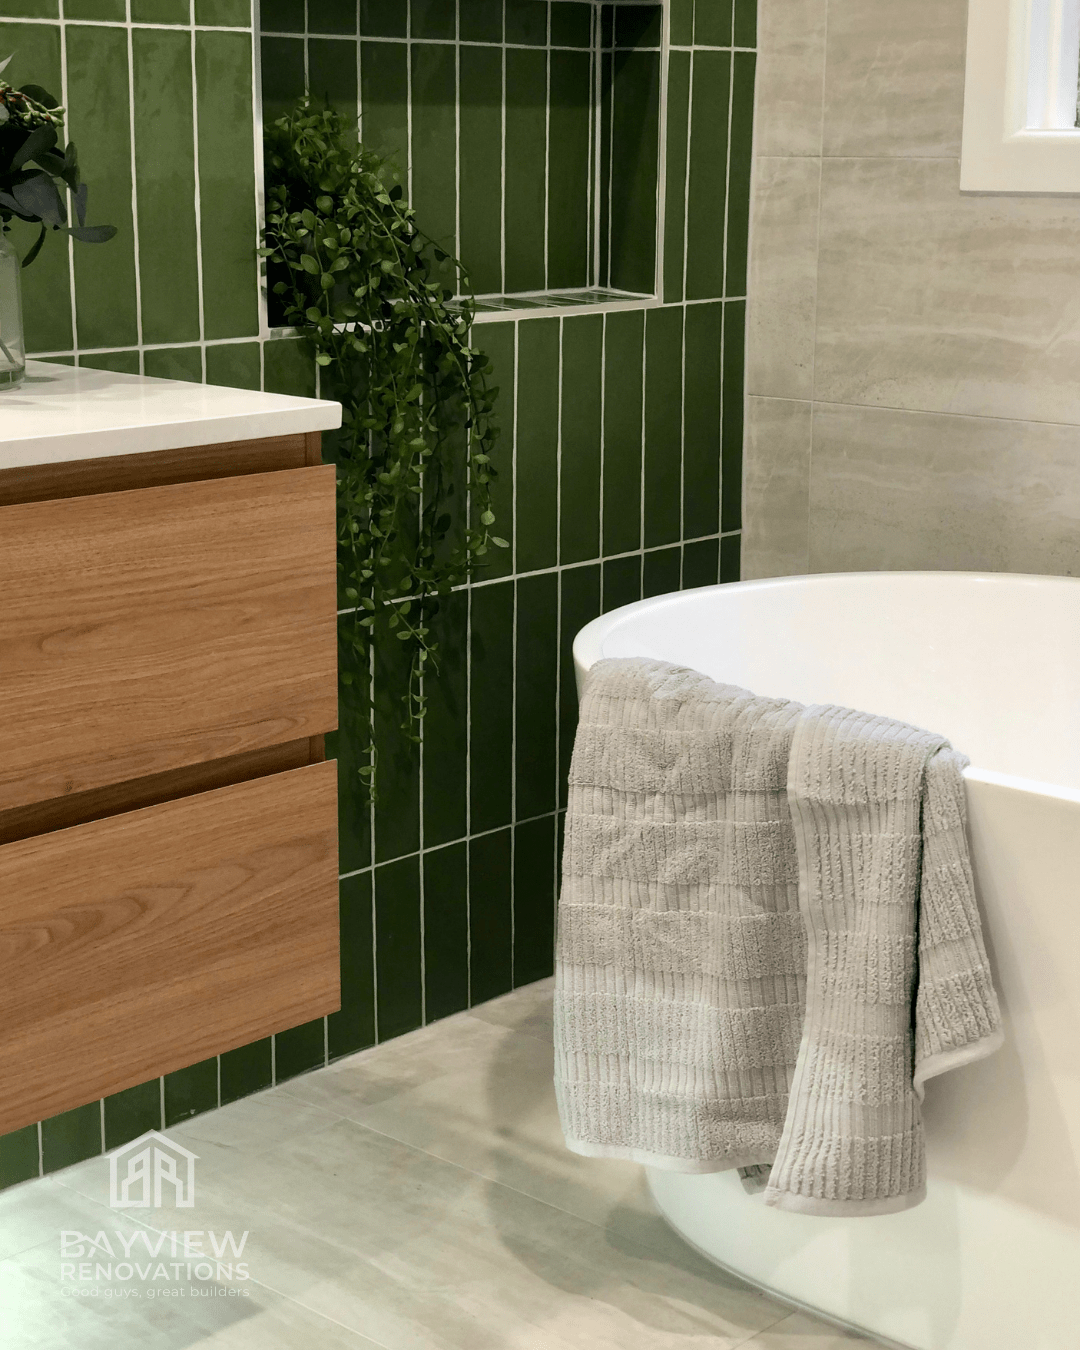 Bathroom Renovation Services in Hilton Street - Bayview Renovations